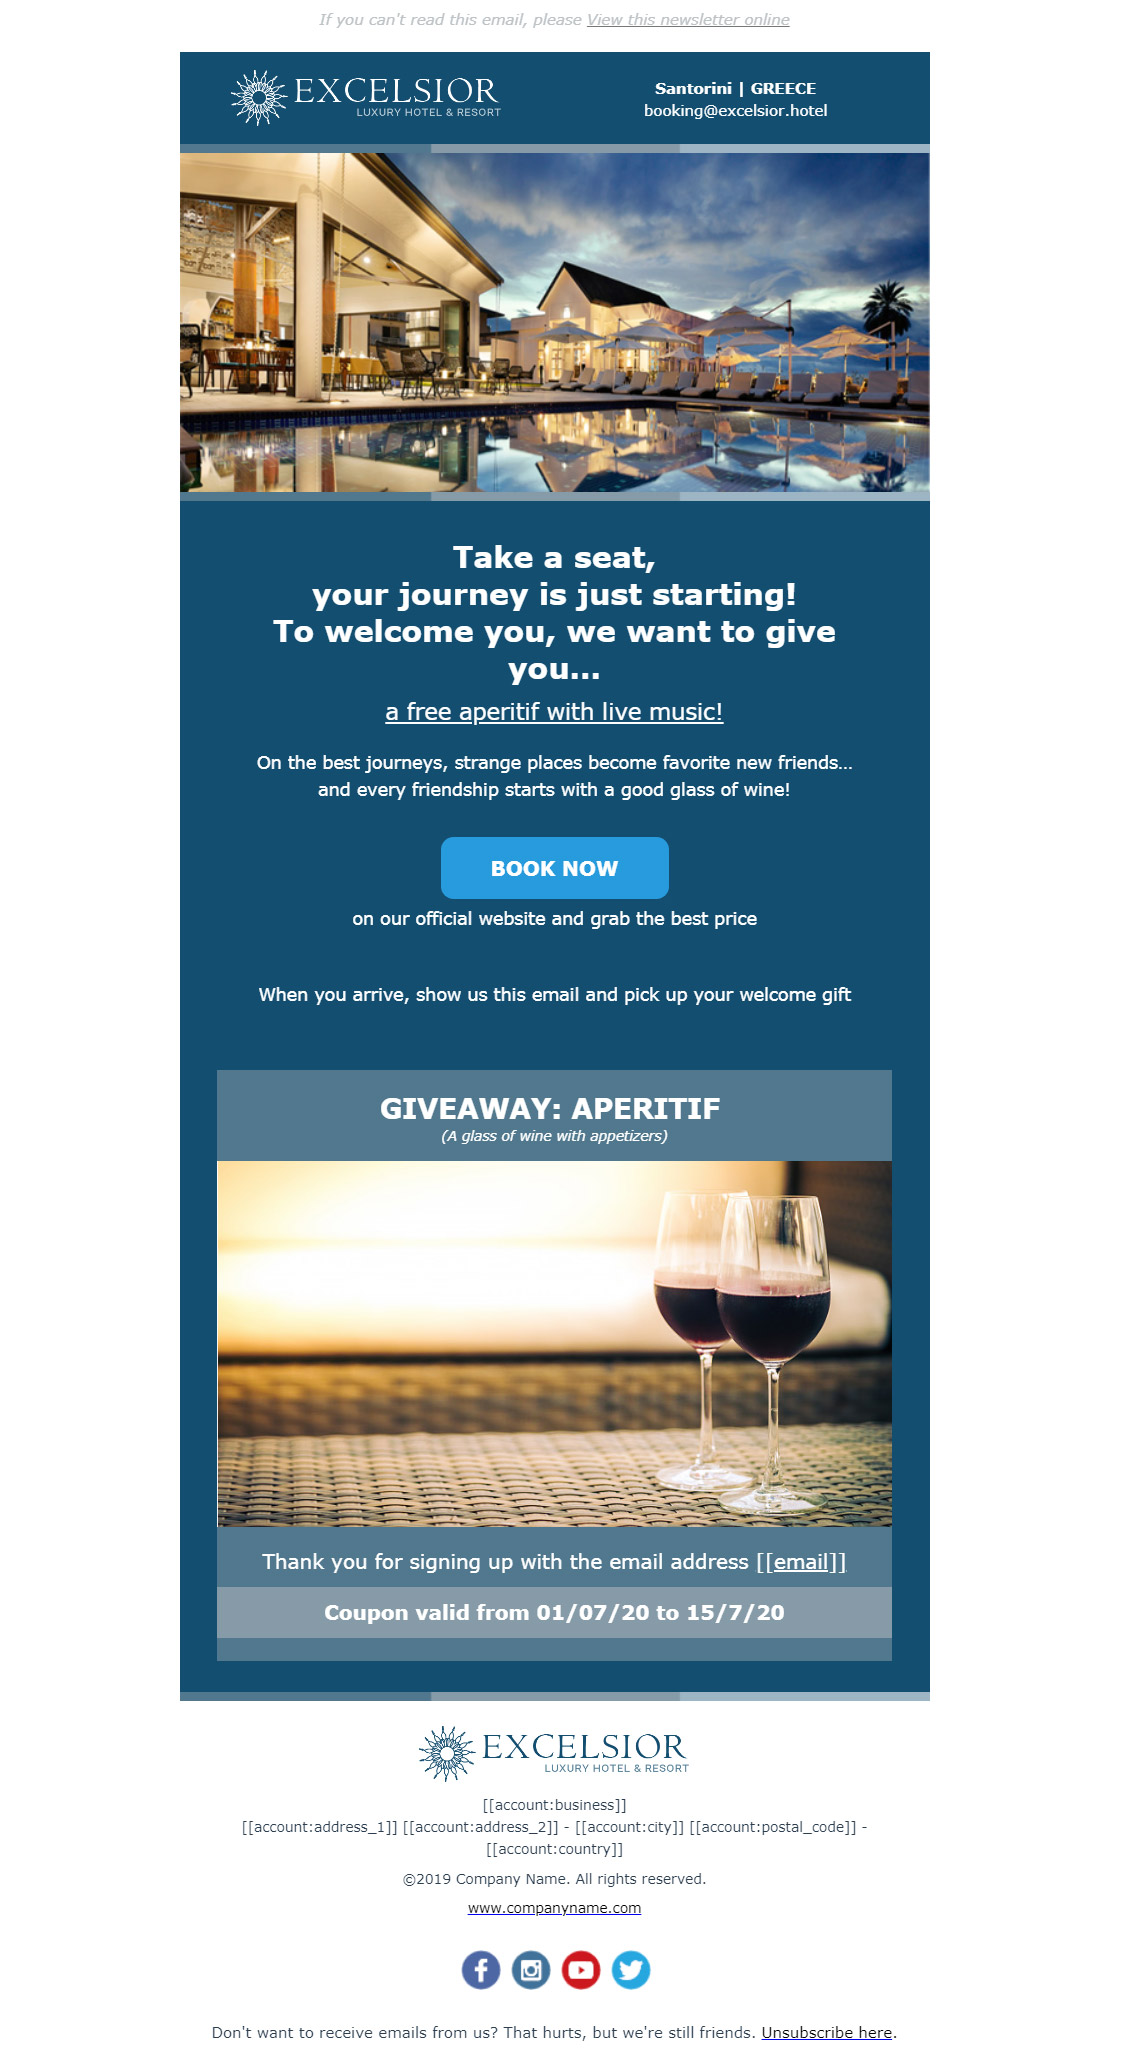 Hotel newsletter example - Welcome gift